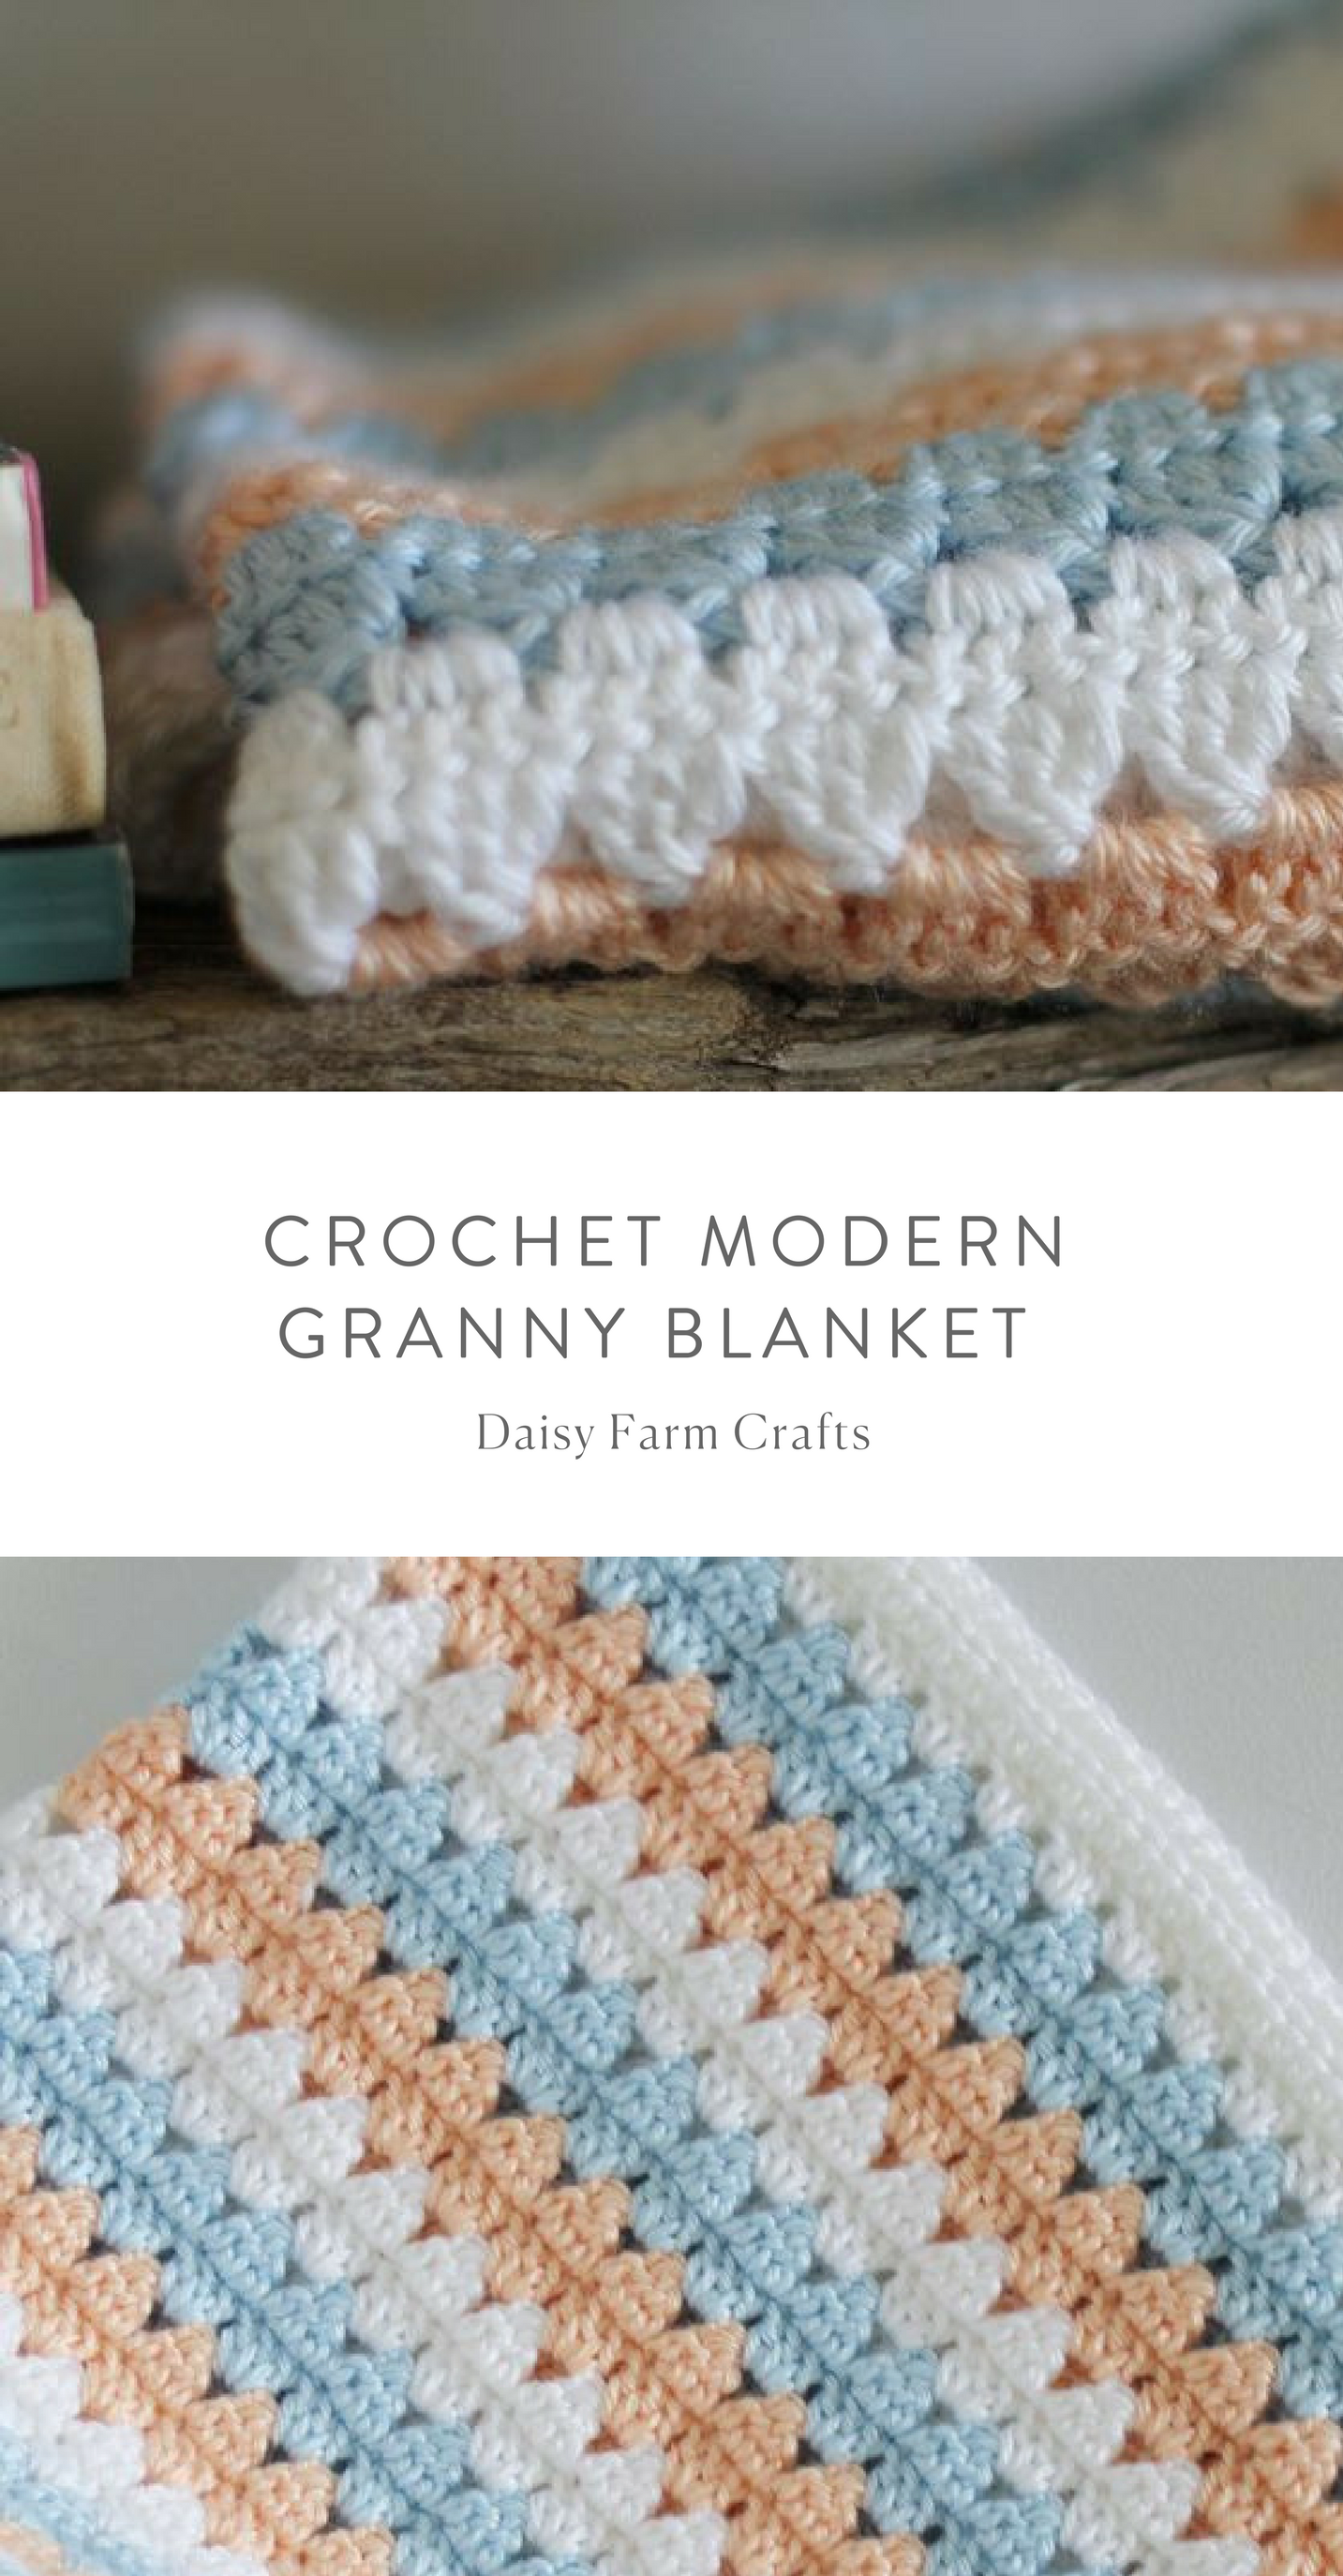 Free Pattern - Crochet Modern Granny Blanket in Peach and Blue ...